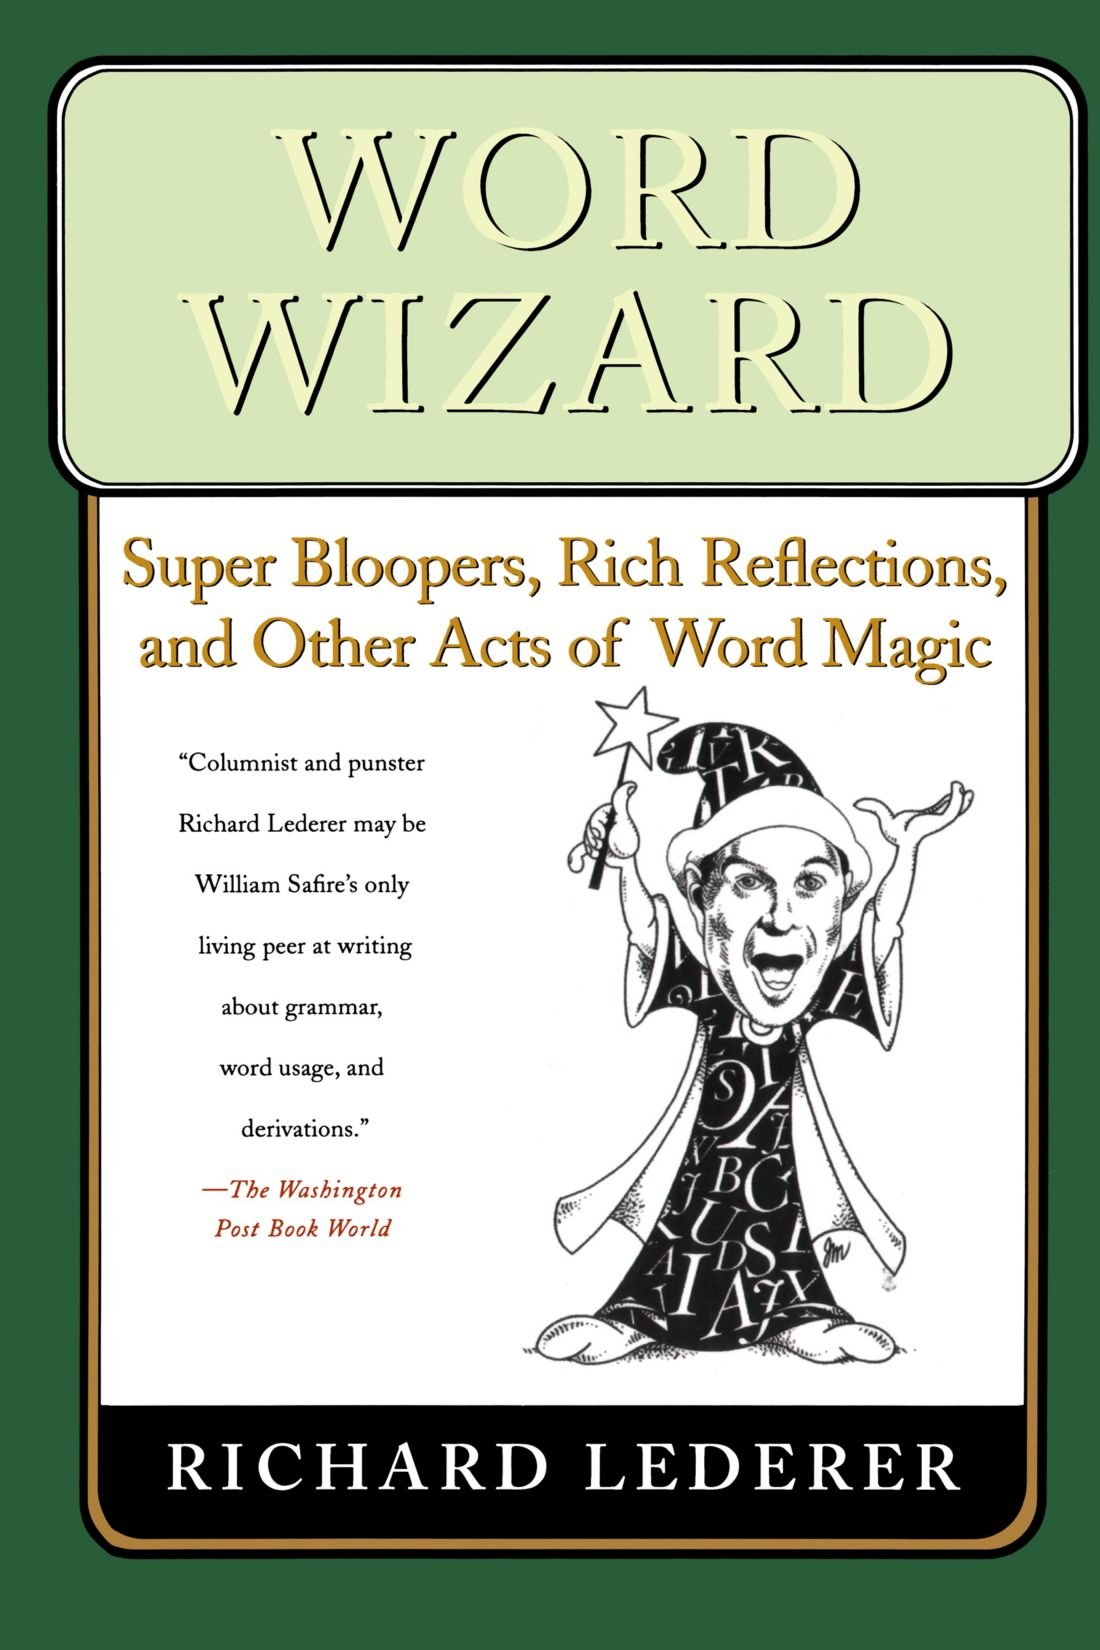 Amazon.com: Word Wizard: Super Bloopers, Rich Reflections, and Other Acts  of Word Magic (9780312351717): Richard Lederer: Books